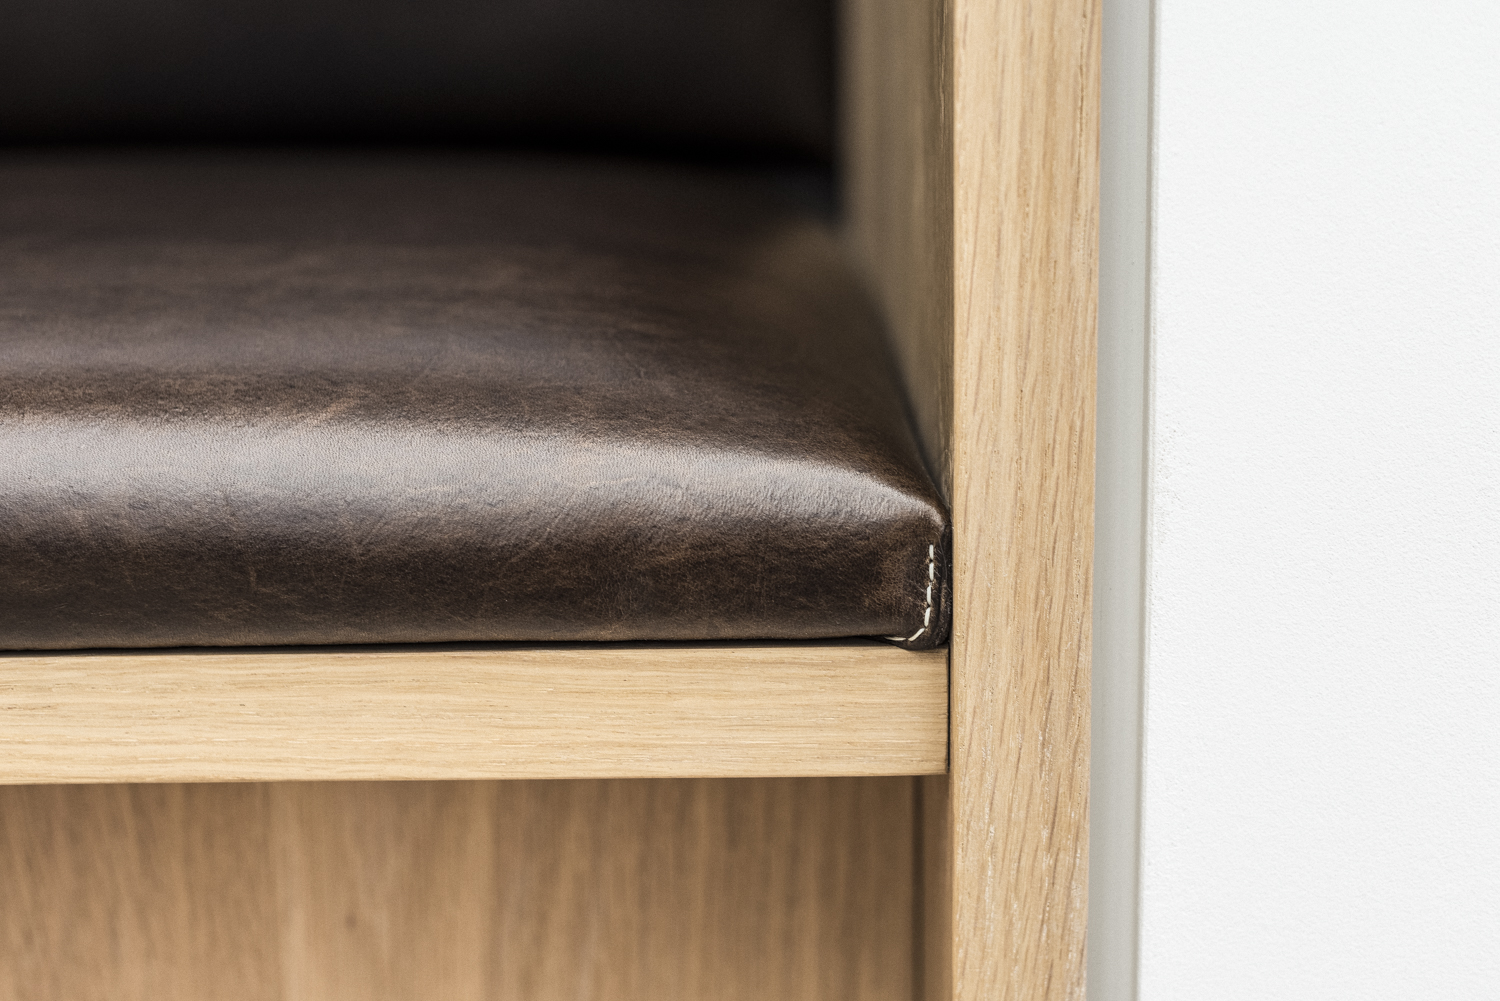 An extreme close up of the tanned leather seating, displaying the soft texture.